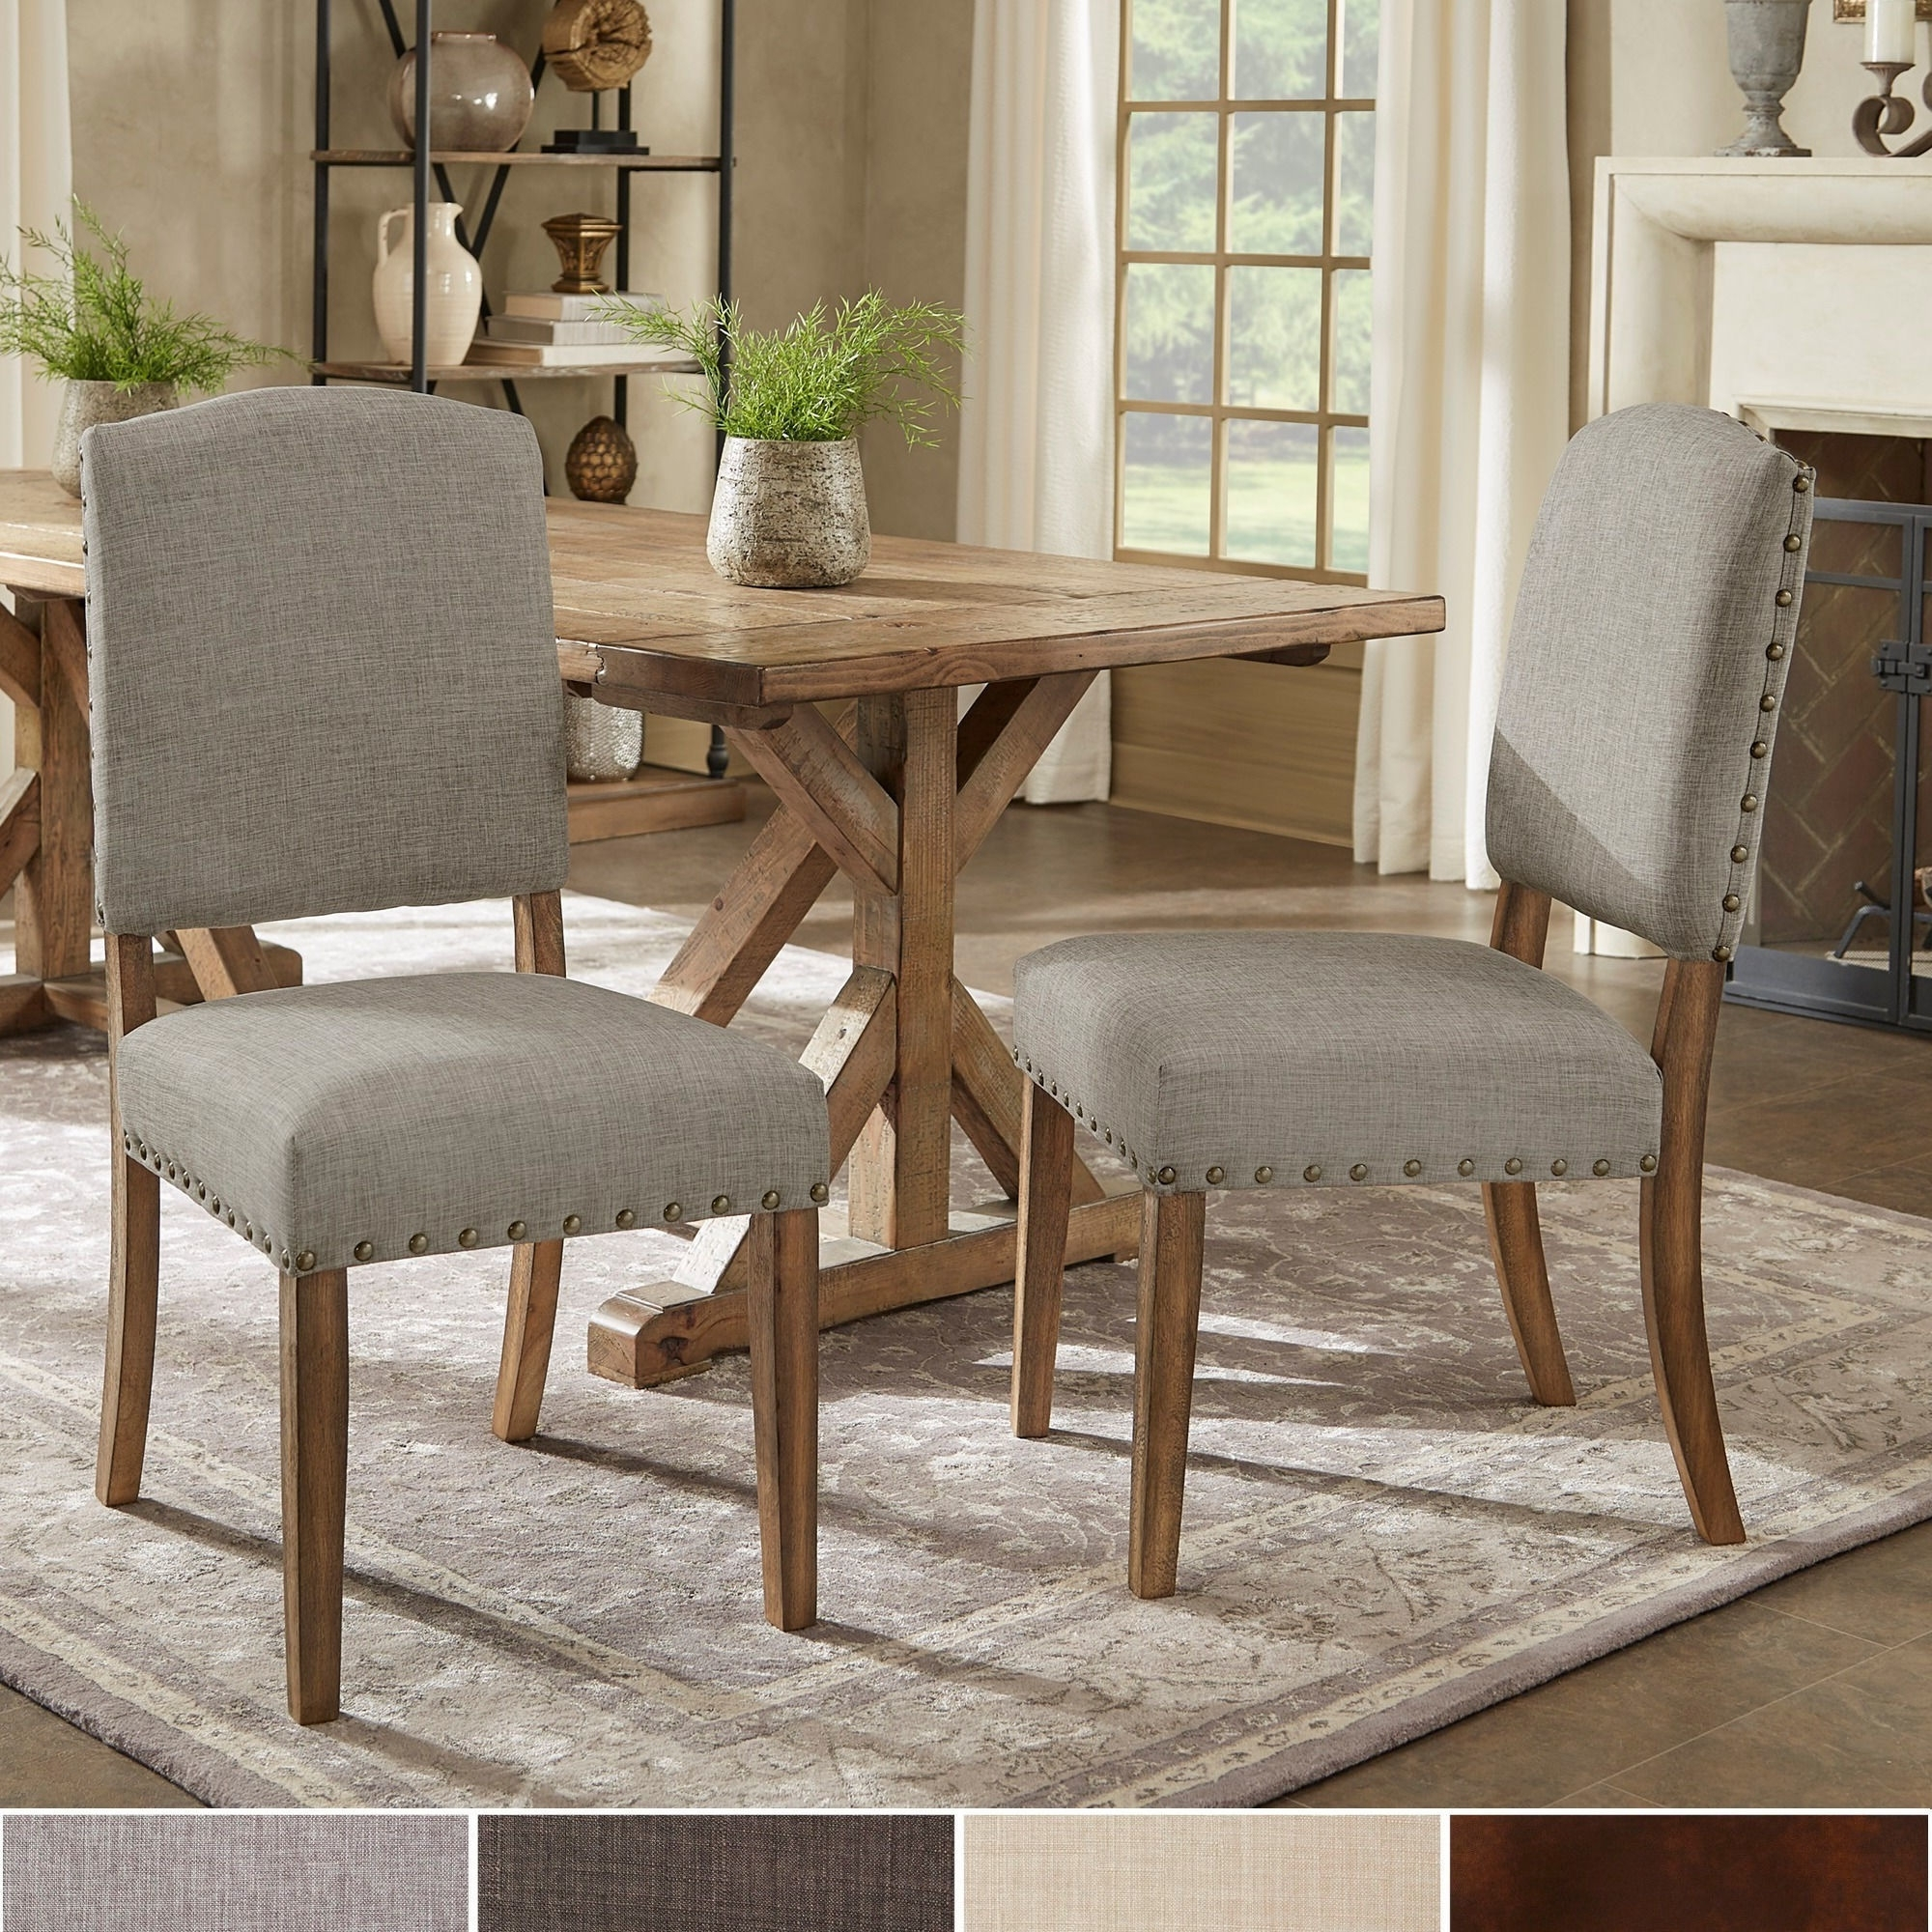 Well Liked Shop Benchwright Premium Nailhead Upholstered Dining Chairs (Set Of In Candice Ii 5 Piece Round Dining Sets (View 11 of 25)